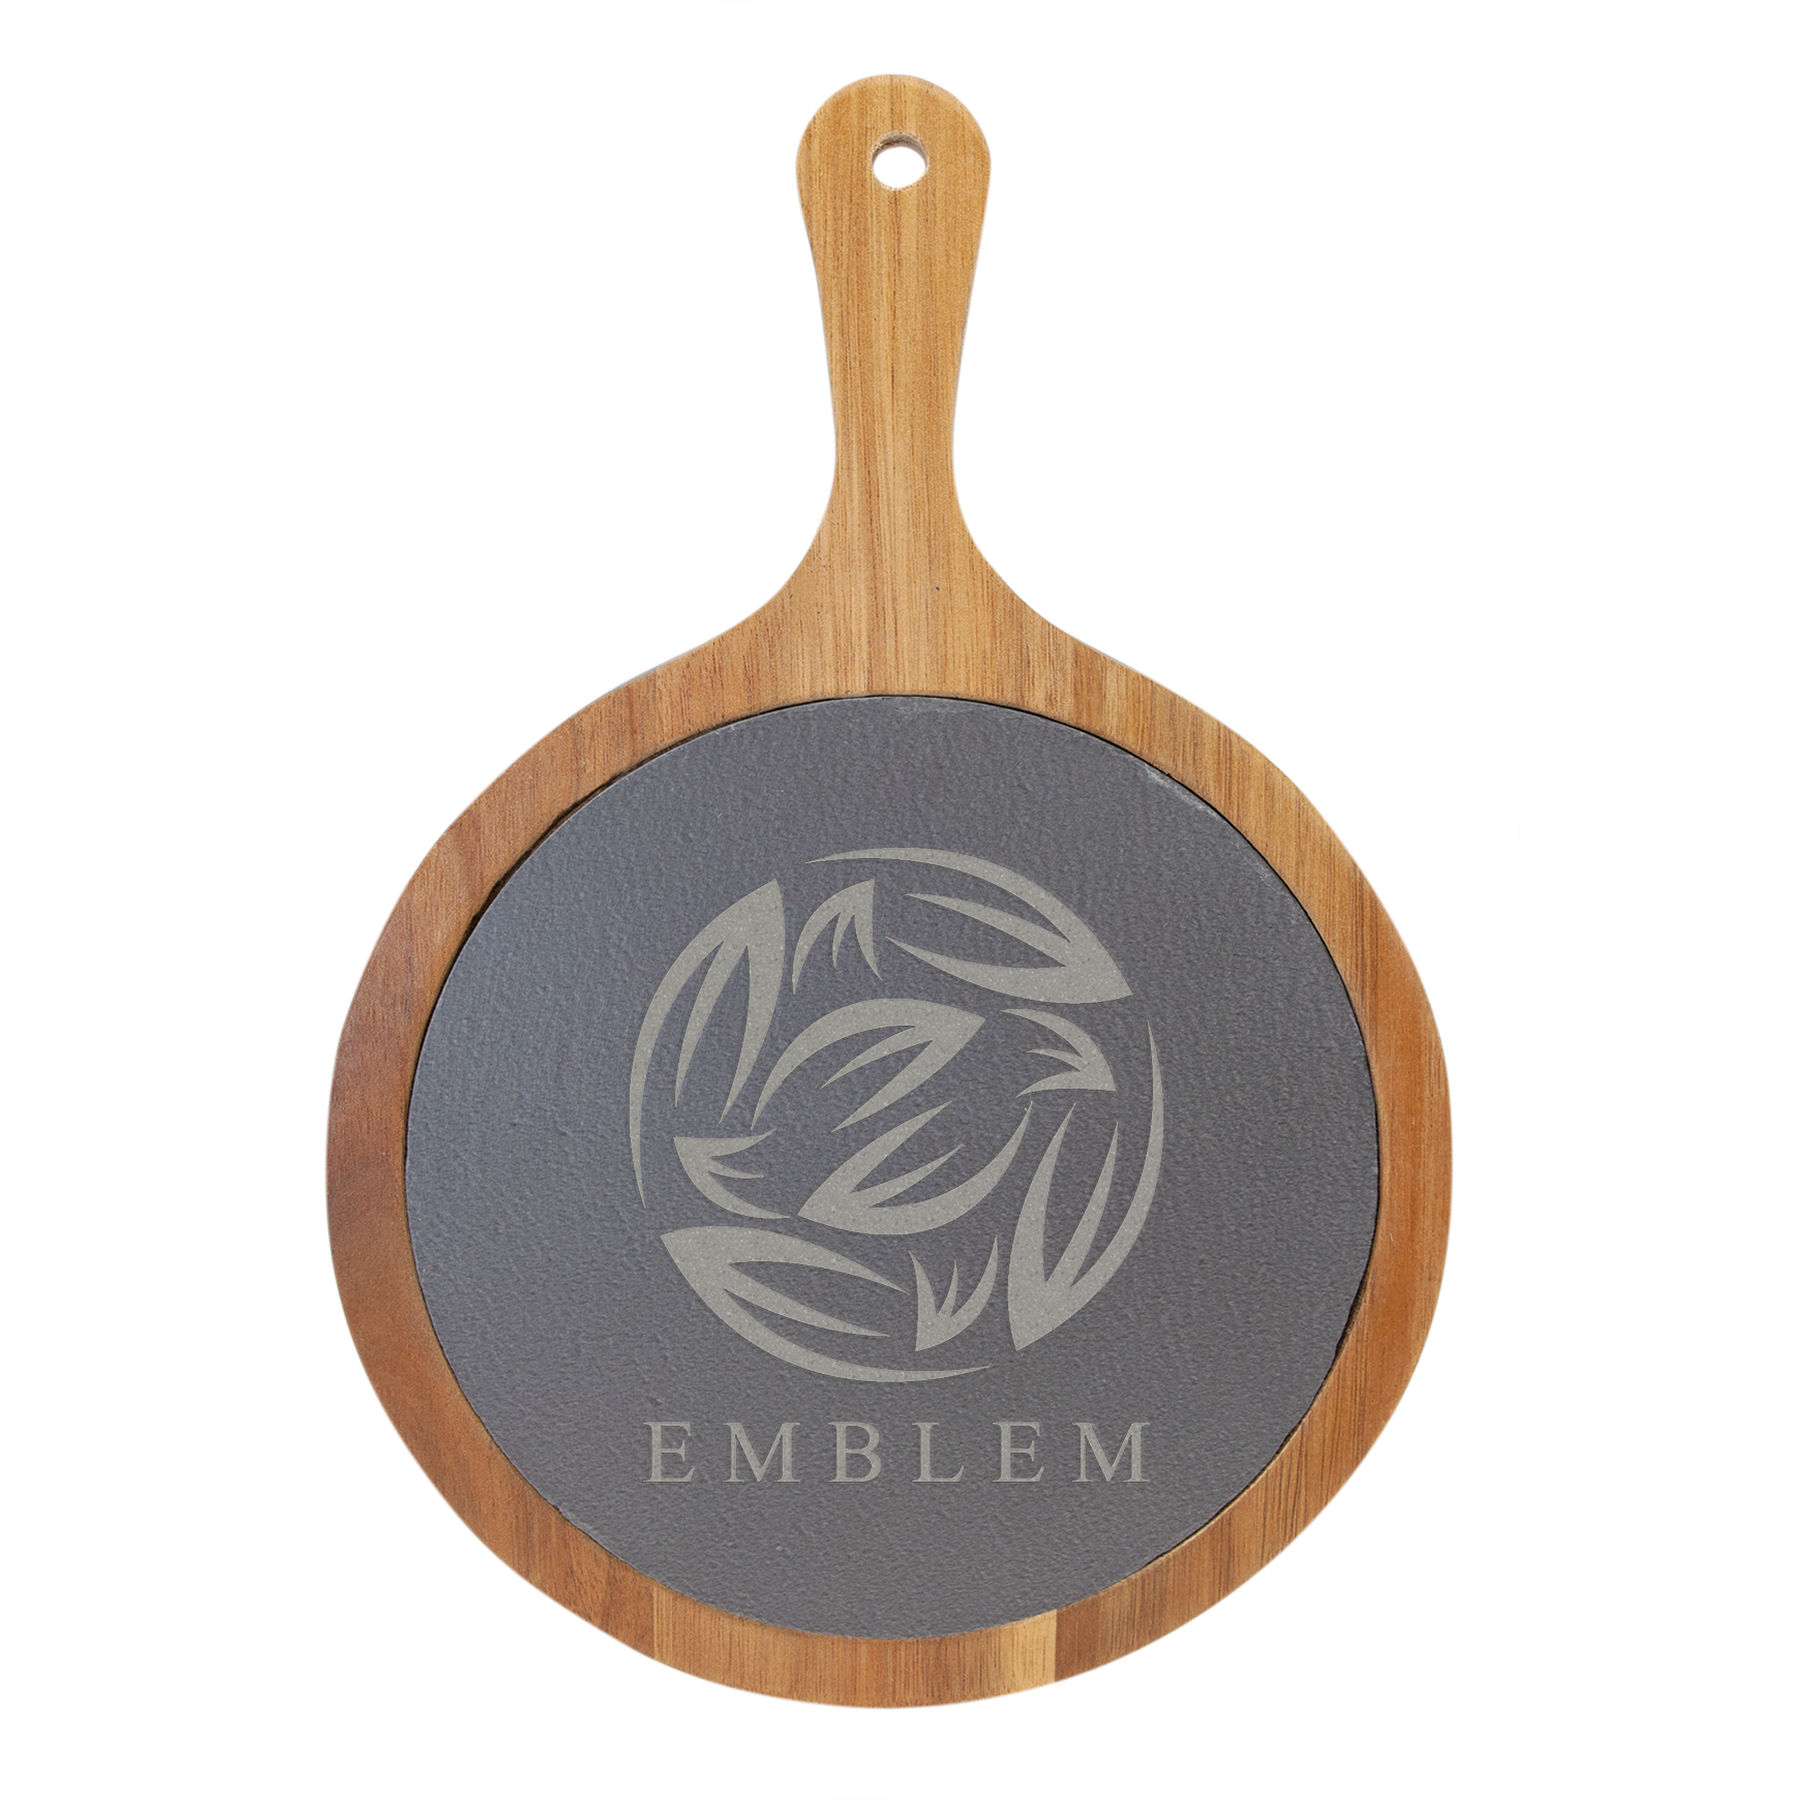 """Customize this 12 1/4"""" x 8 1/4"""" Round Acacia Wood/Slate Serving Board with Handle with your company logo or personal saying."""